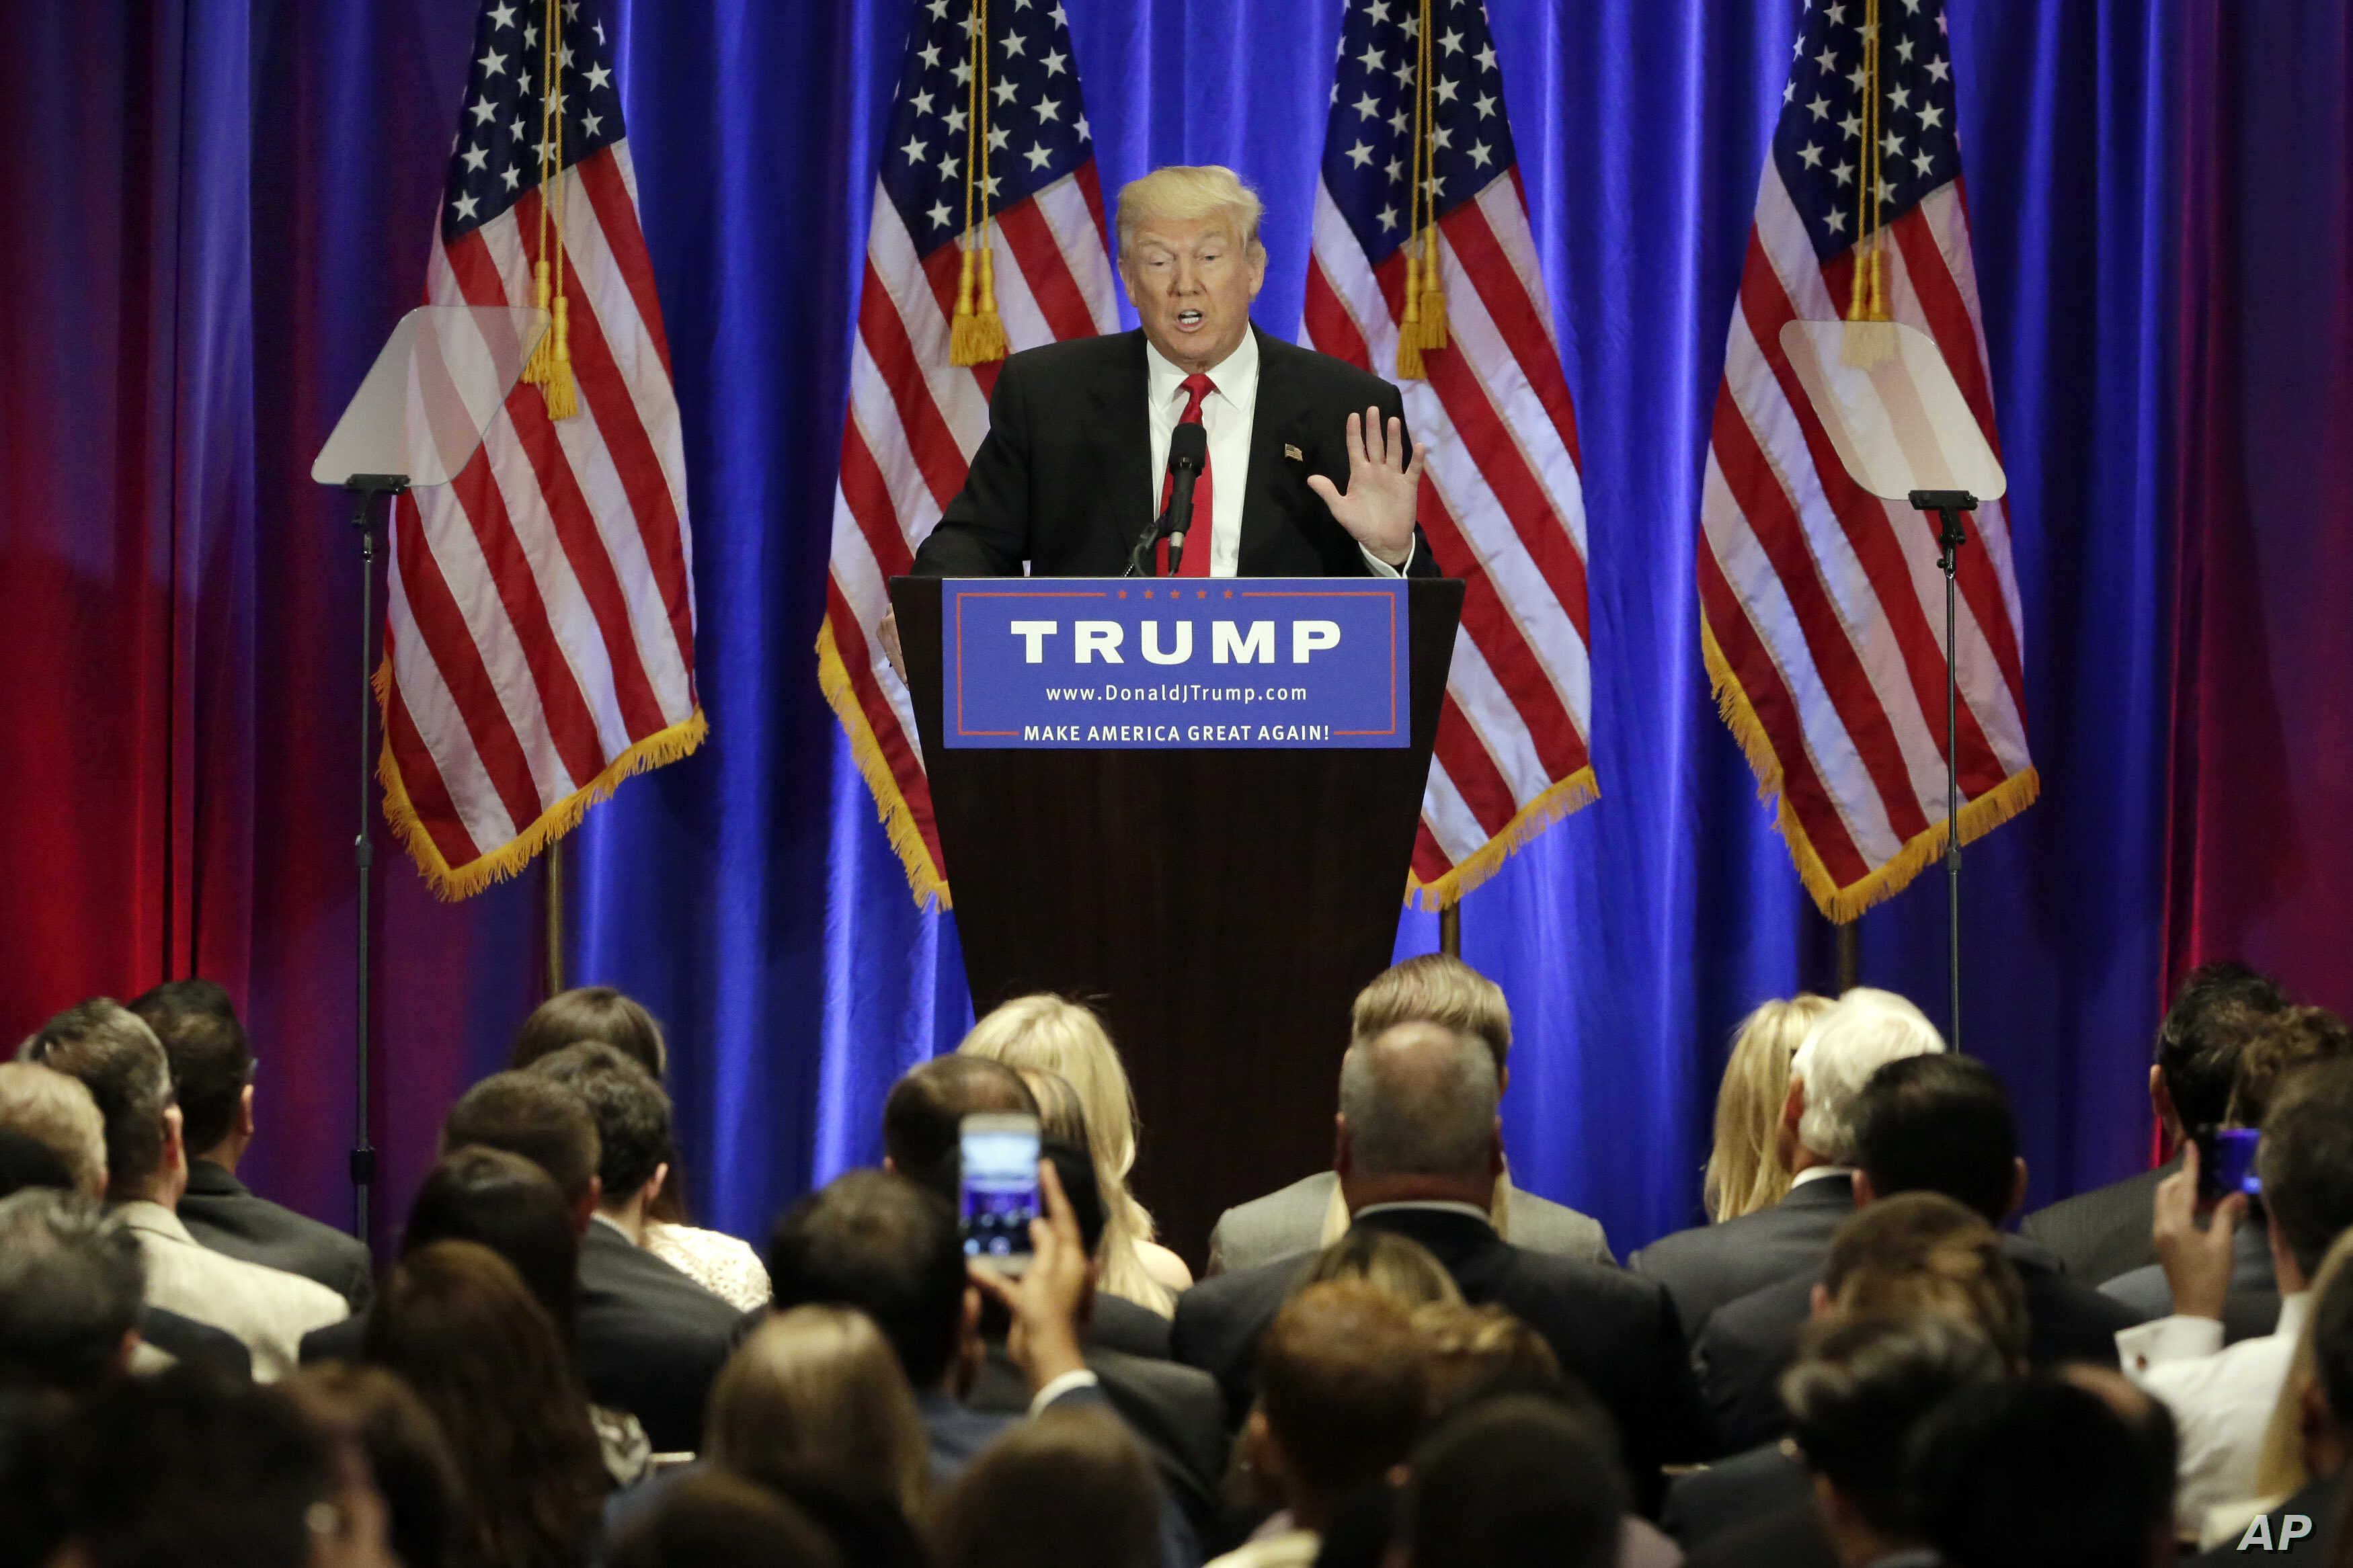 Republican presidential candidate Donald Trump speaks at the Trump Soho Hotel in New York, June 22, 2016.